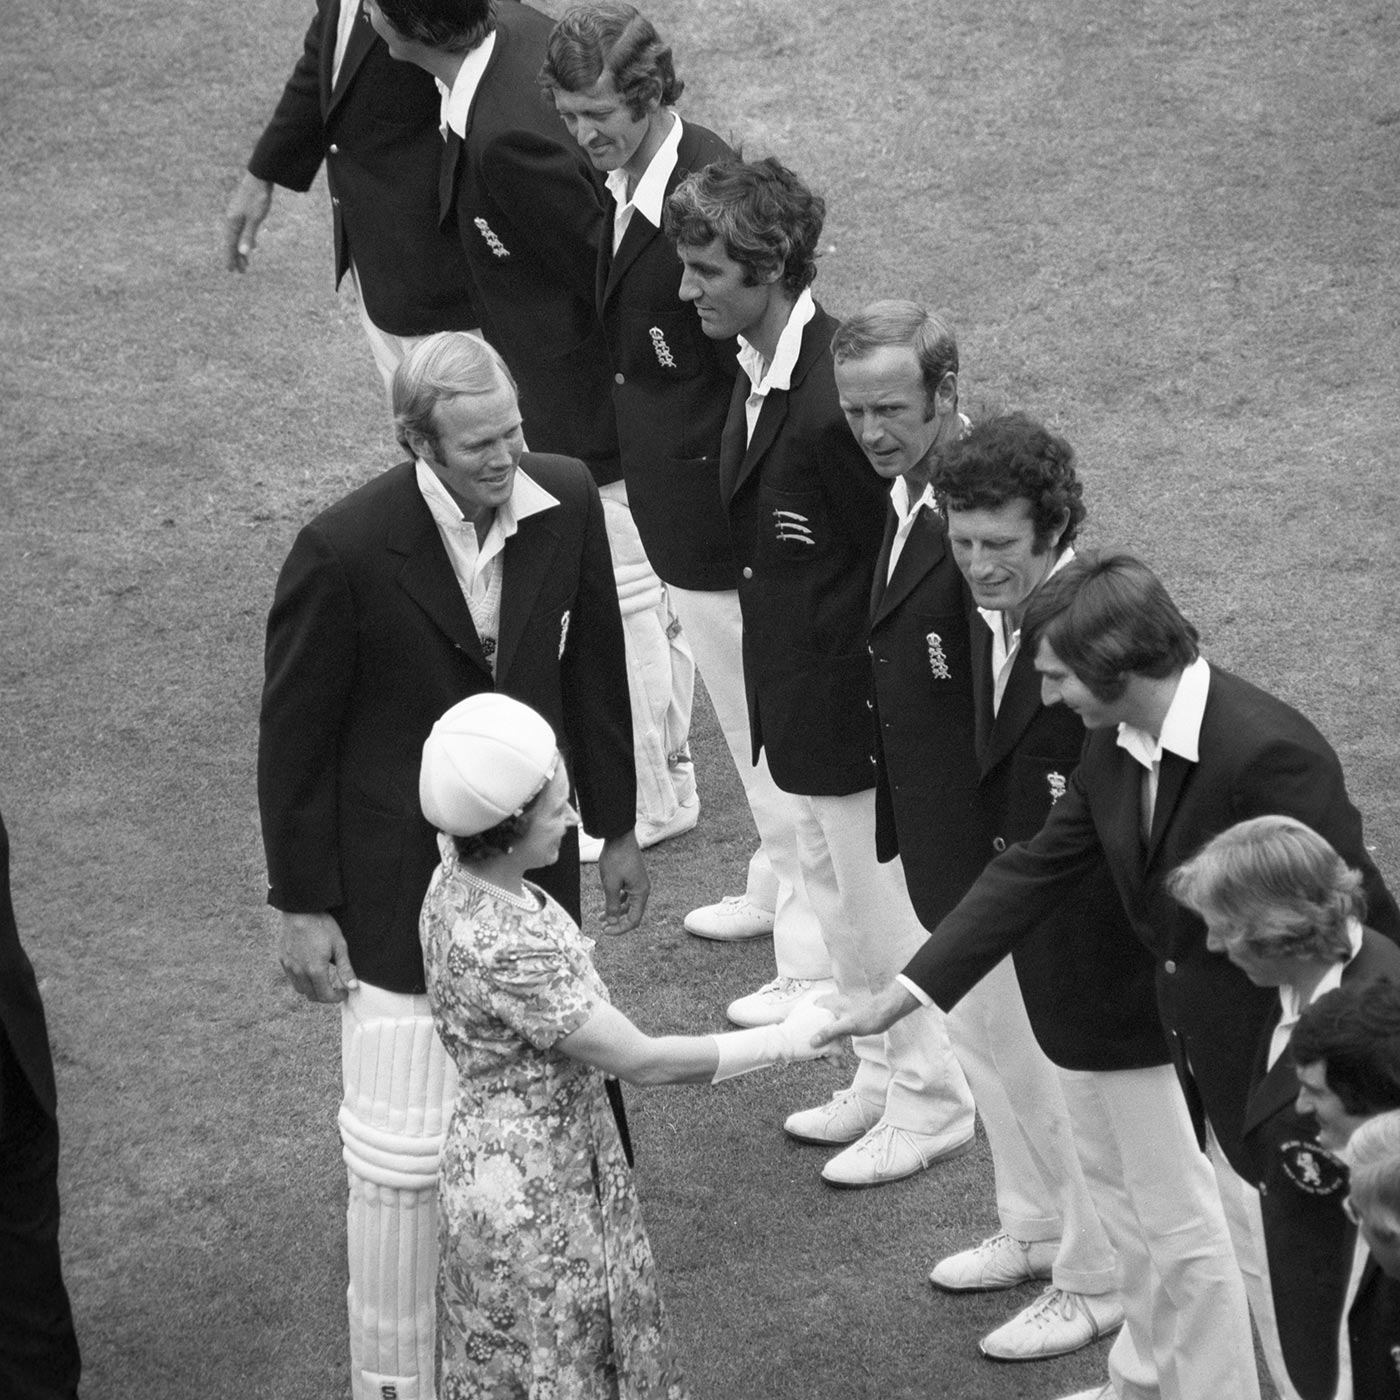 Tony Greig introduces his men to the Queen. Snow is to the right of Chris Old, shaking the Queen's hand